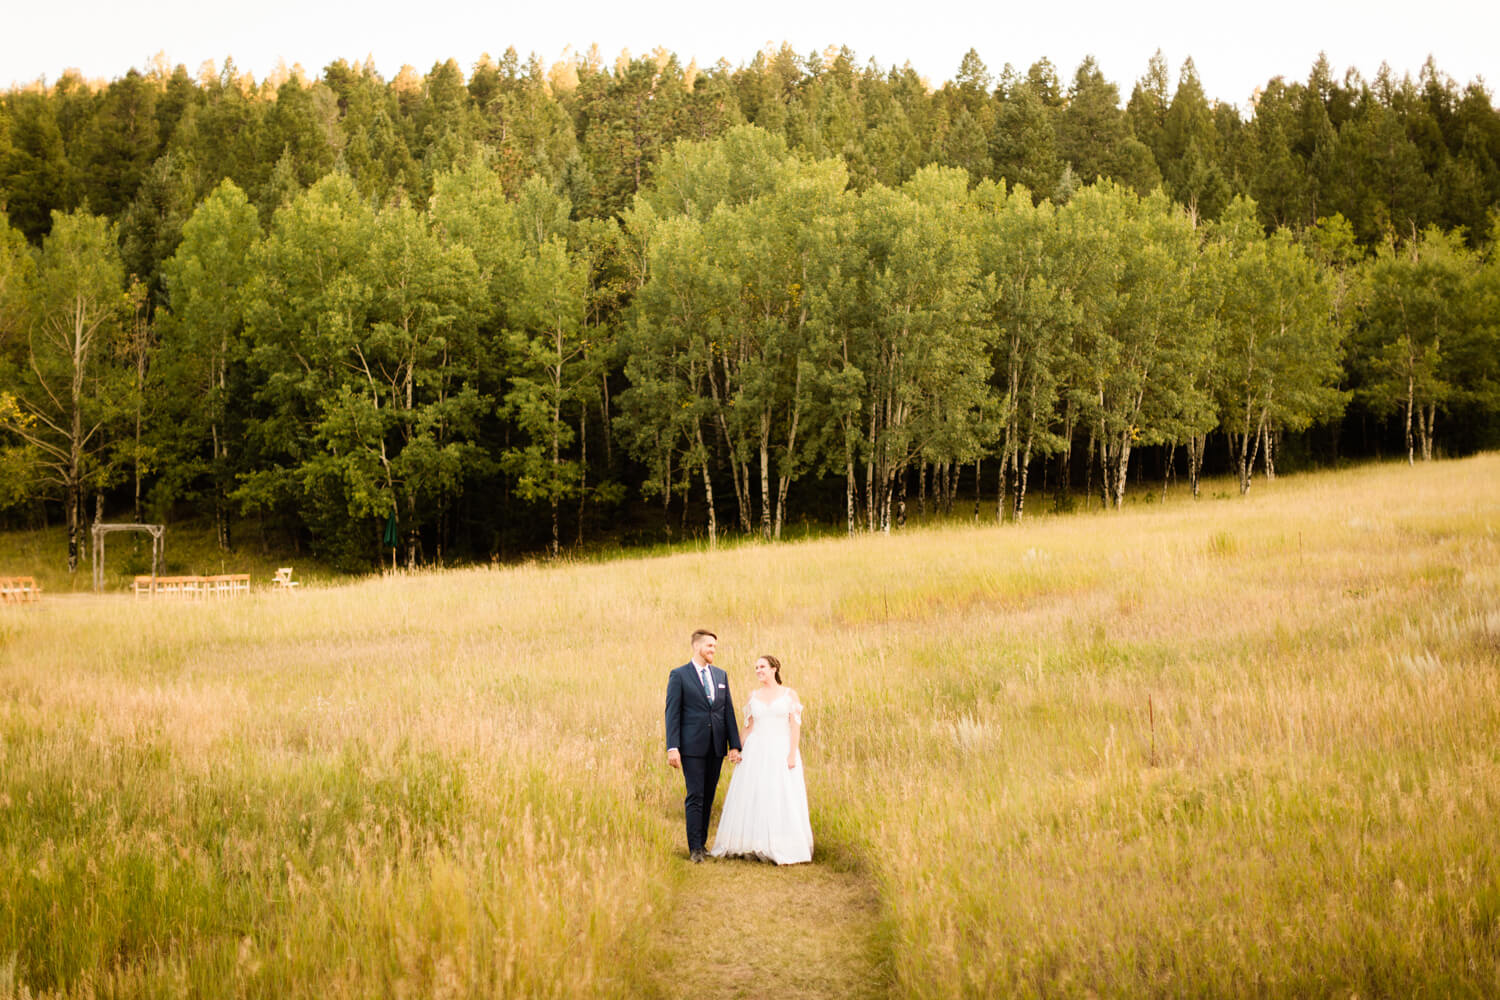 bride and groom just married walking through a meadow